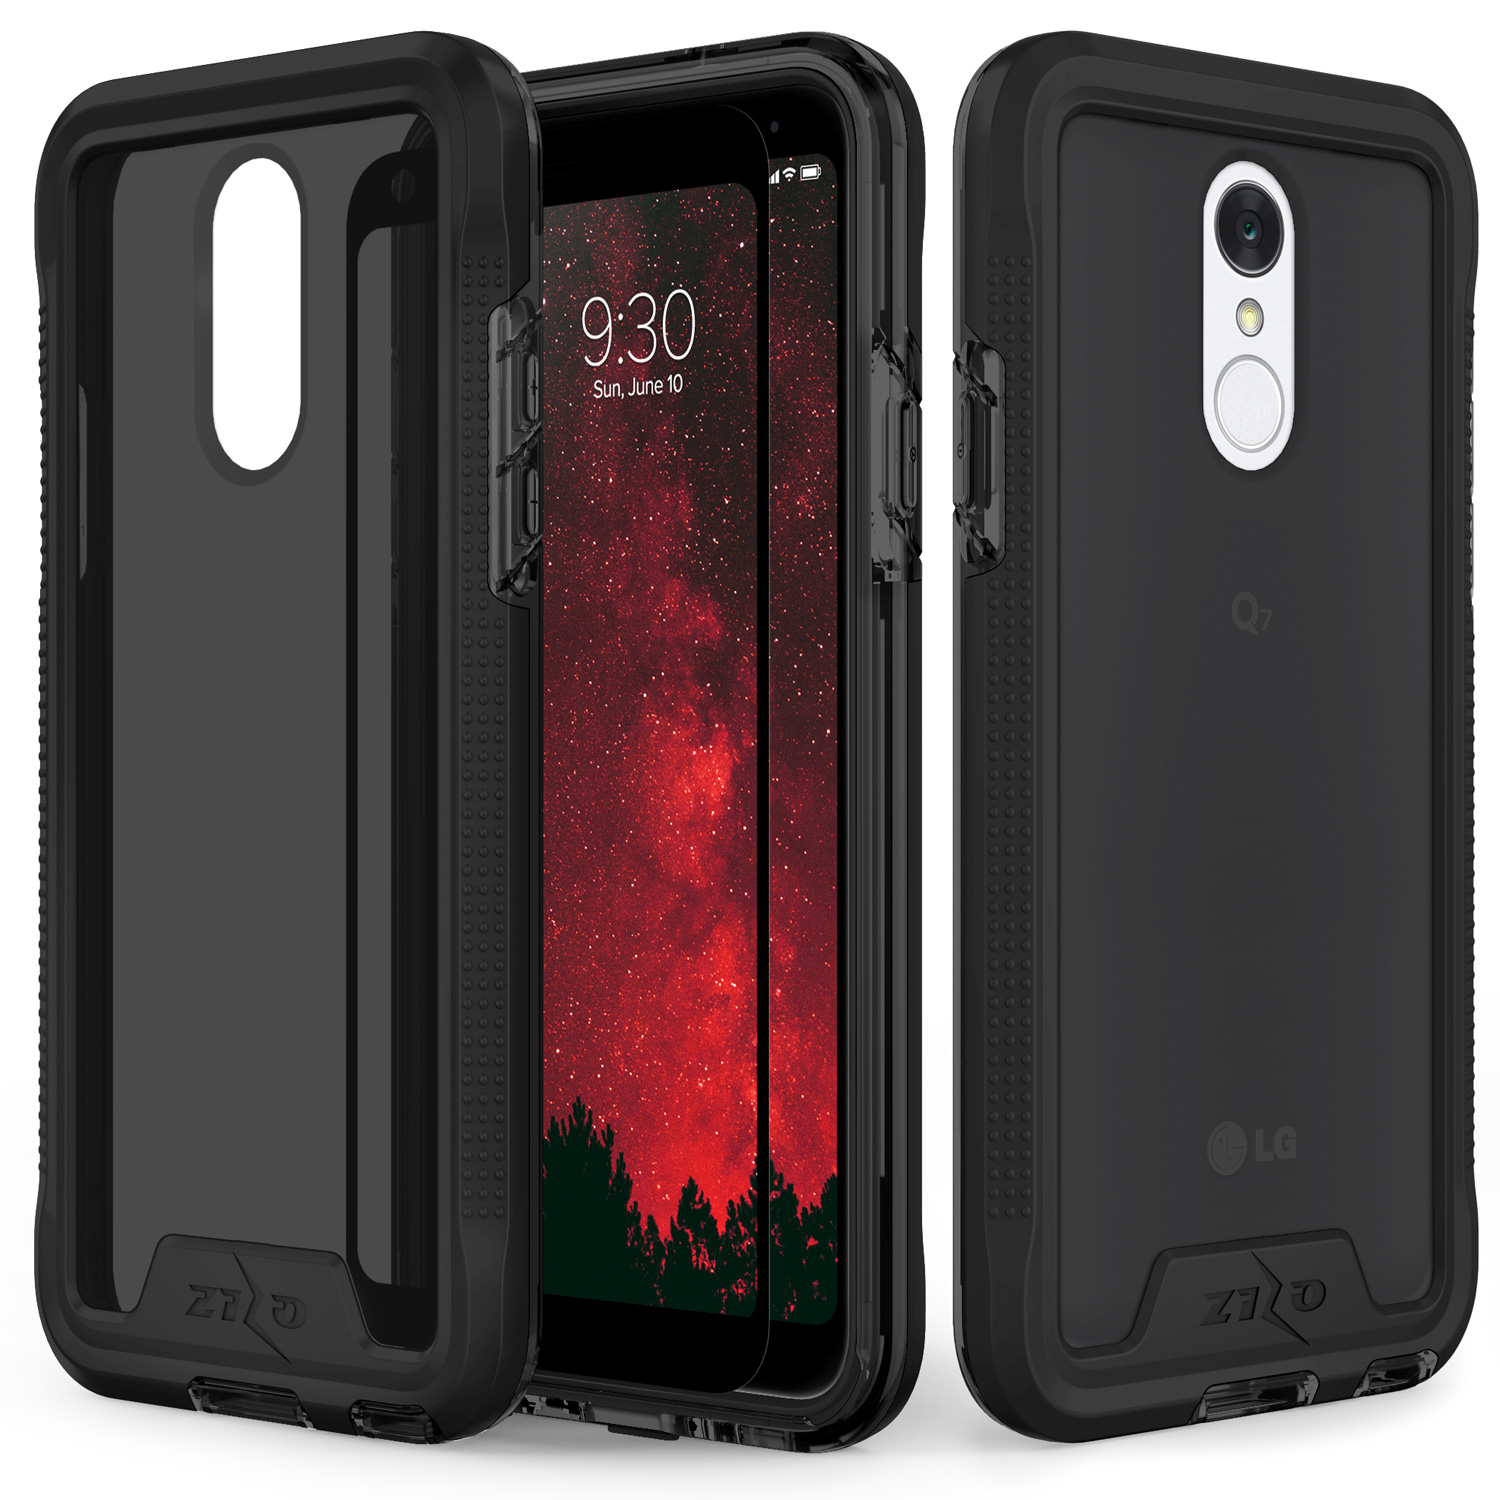 competitive price 38953 cc0d3 Zizo ION Series compatible with LG Q7+ Case Military Grade Drop Tested with  Tempered Glass Screen Protector LG Q7 Plus